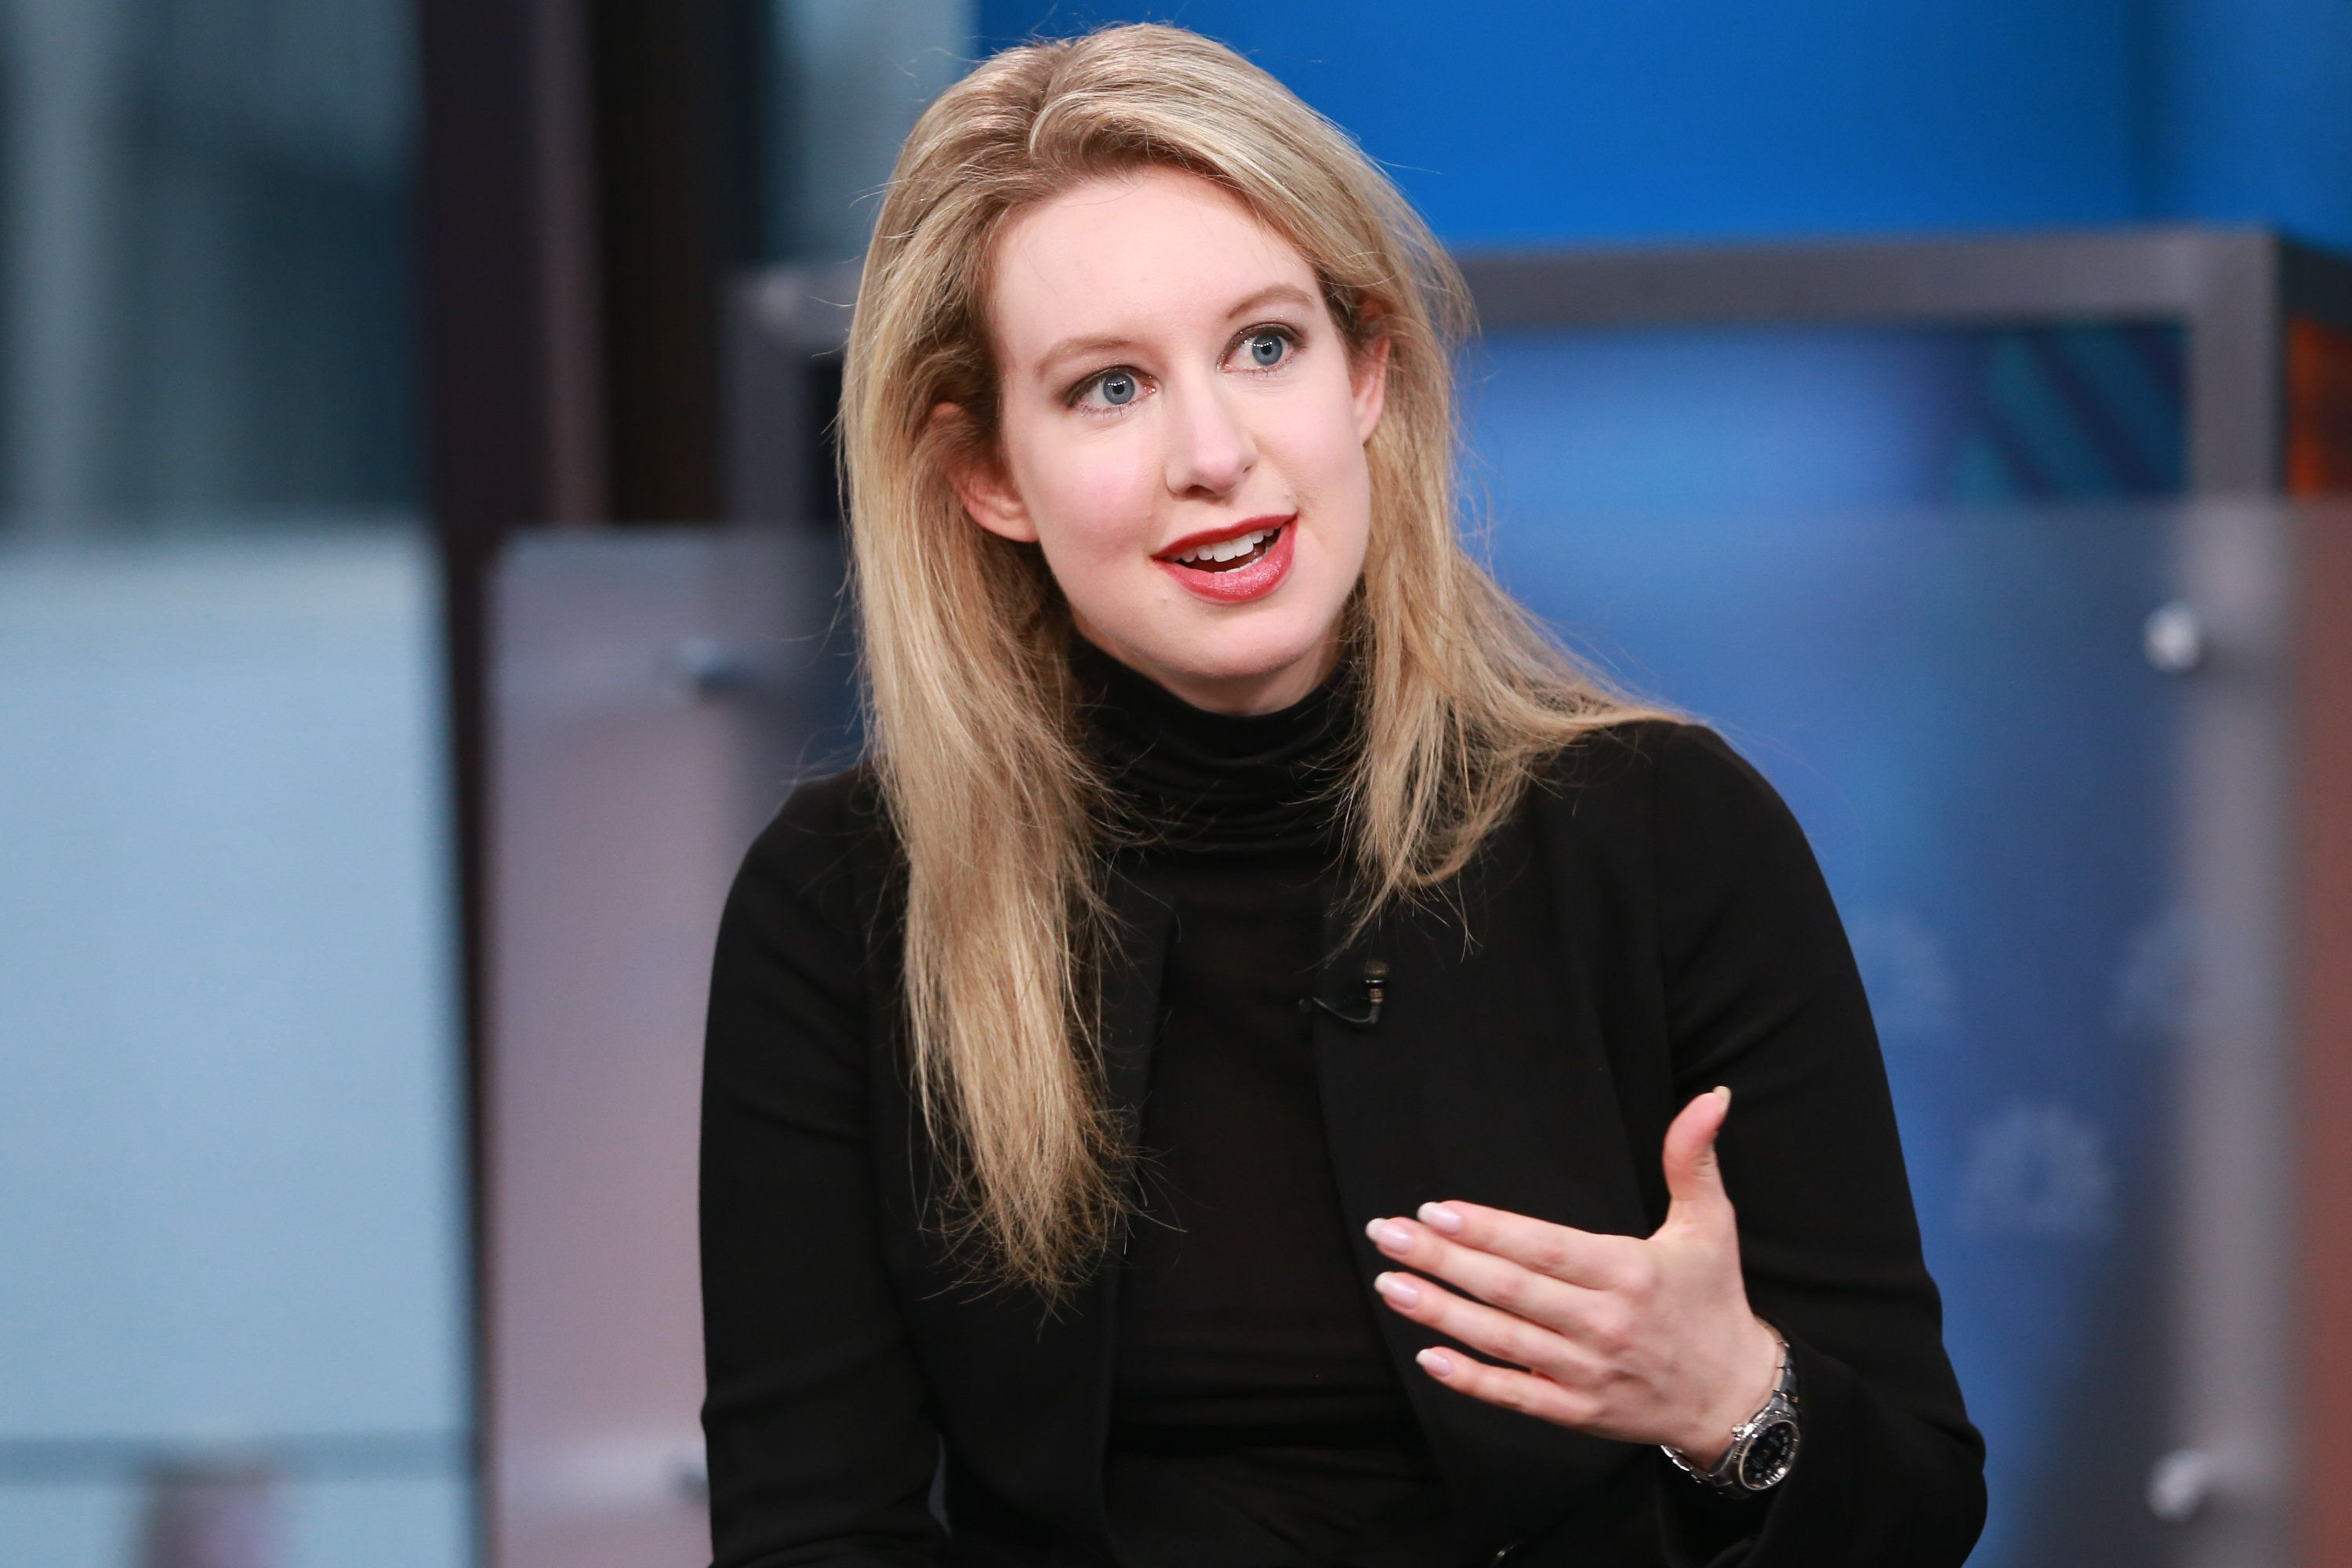 Nutritionists Weigh In On Elizabeth Holmes' Ultra-Restrictive